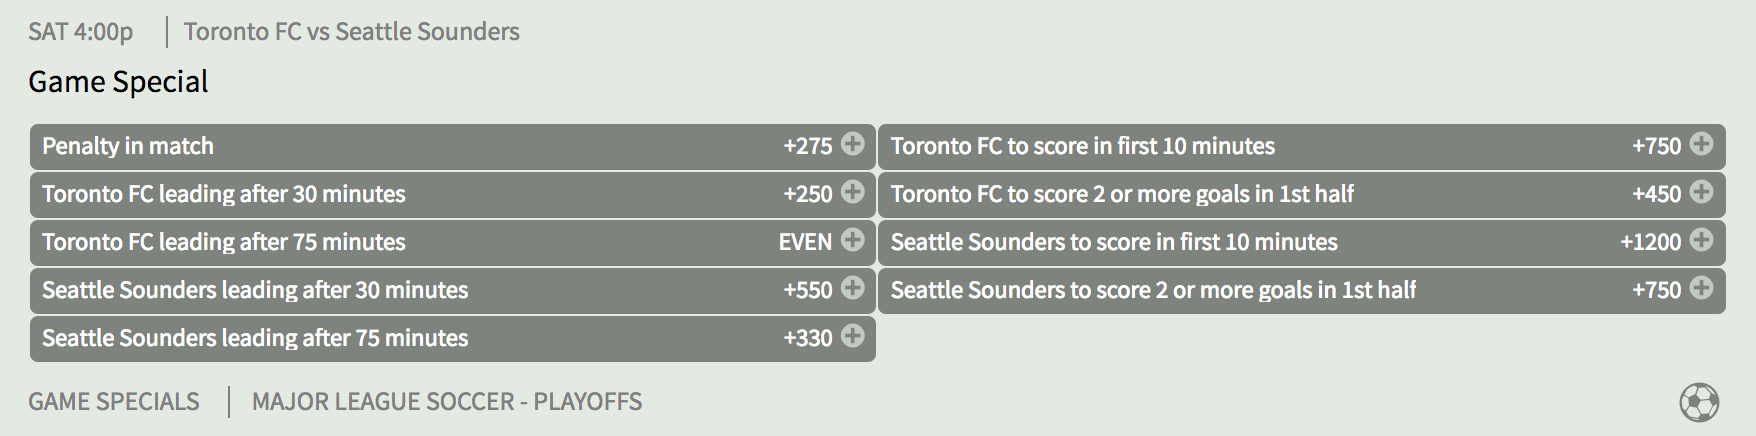 Toronto FC vs Seattle Sounders Game Special